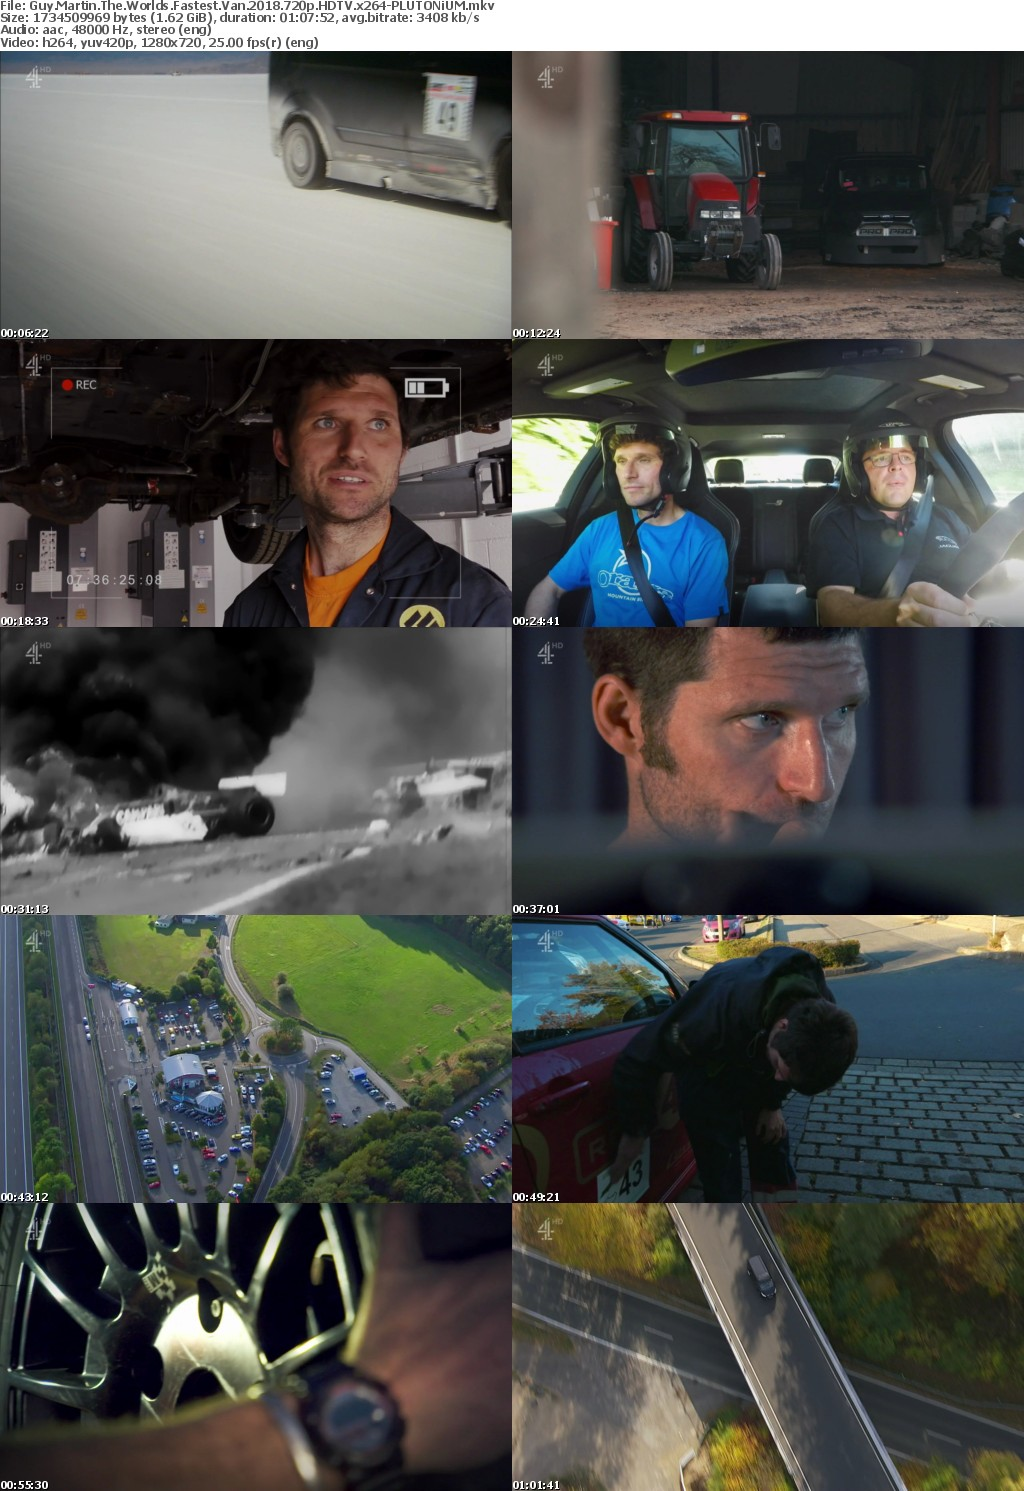 Guy Martin The Worlds Fastest Van 2018 720p HDTV x264-PLUTONiUMrarbg